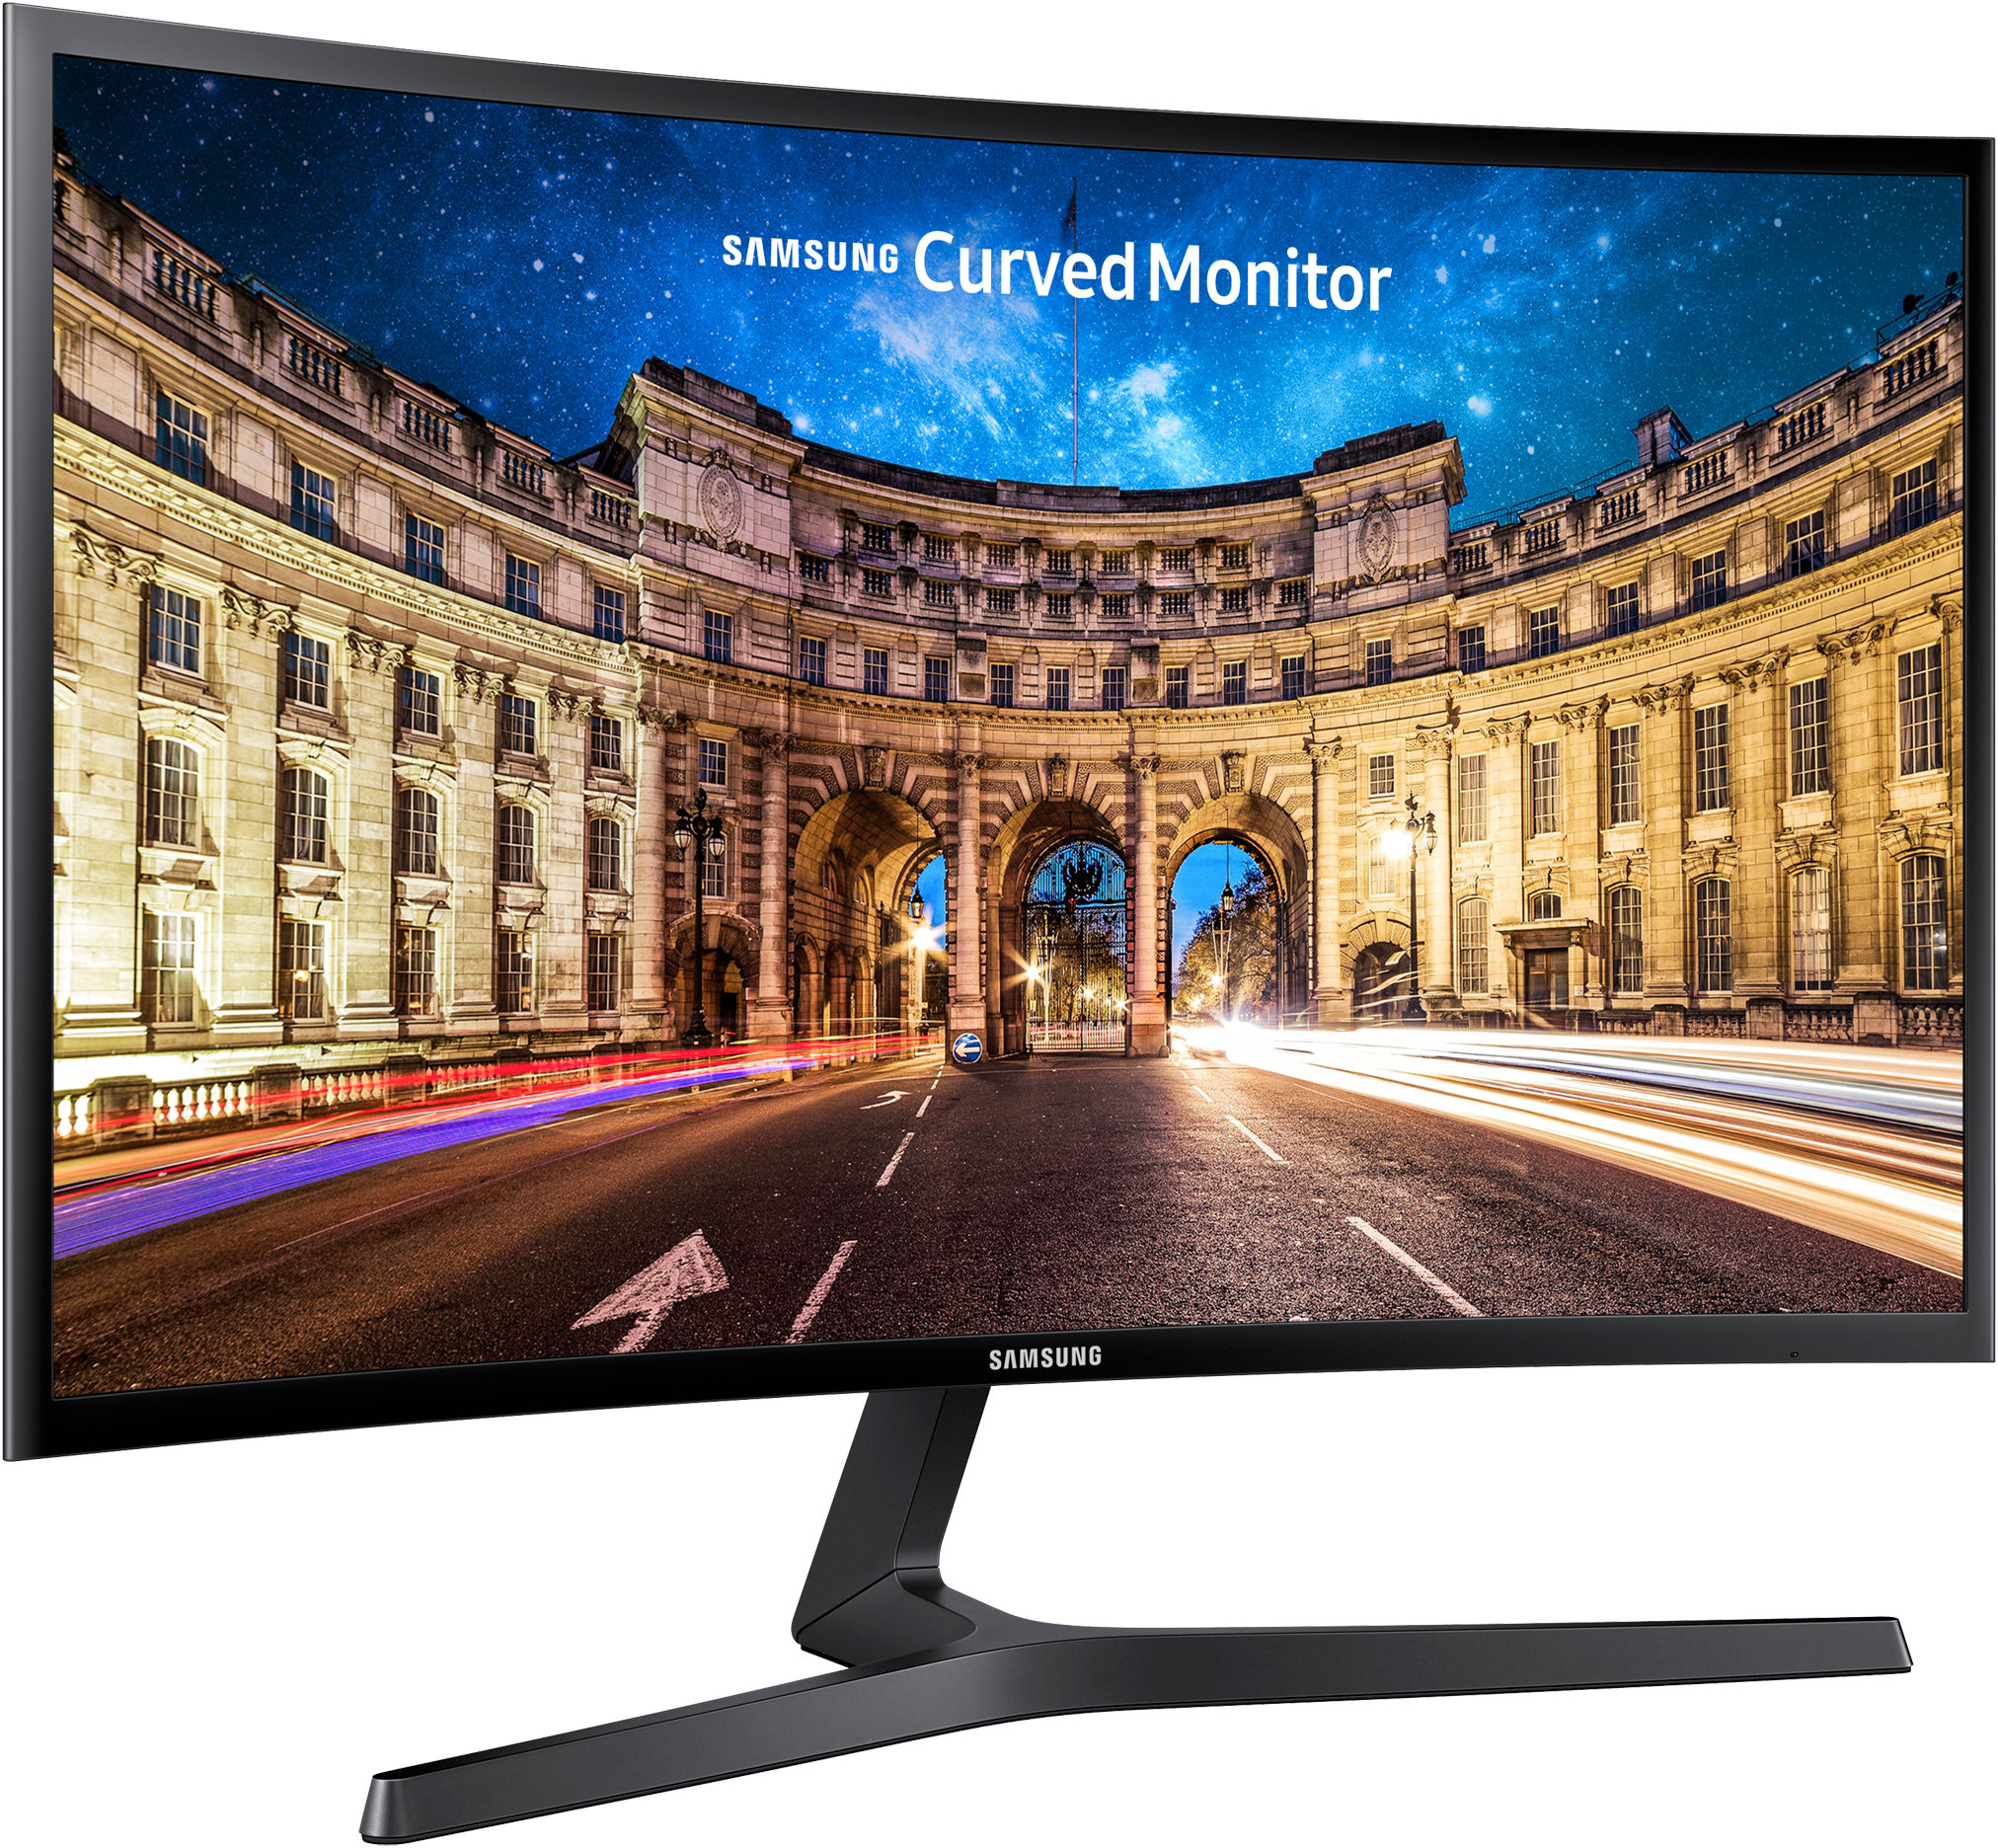 Samsung 24 inch curved monitor Image